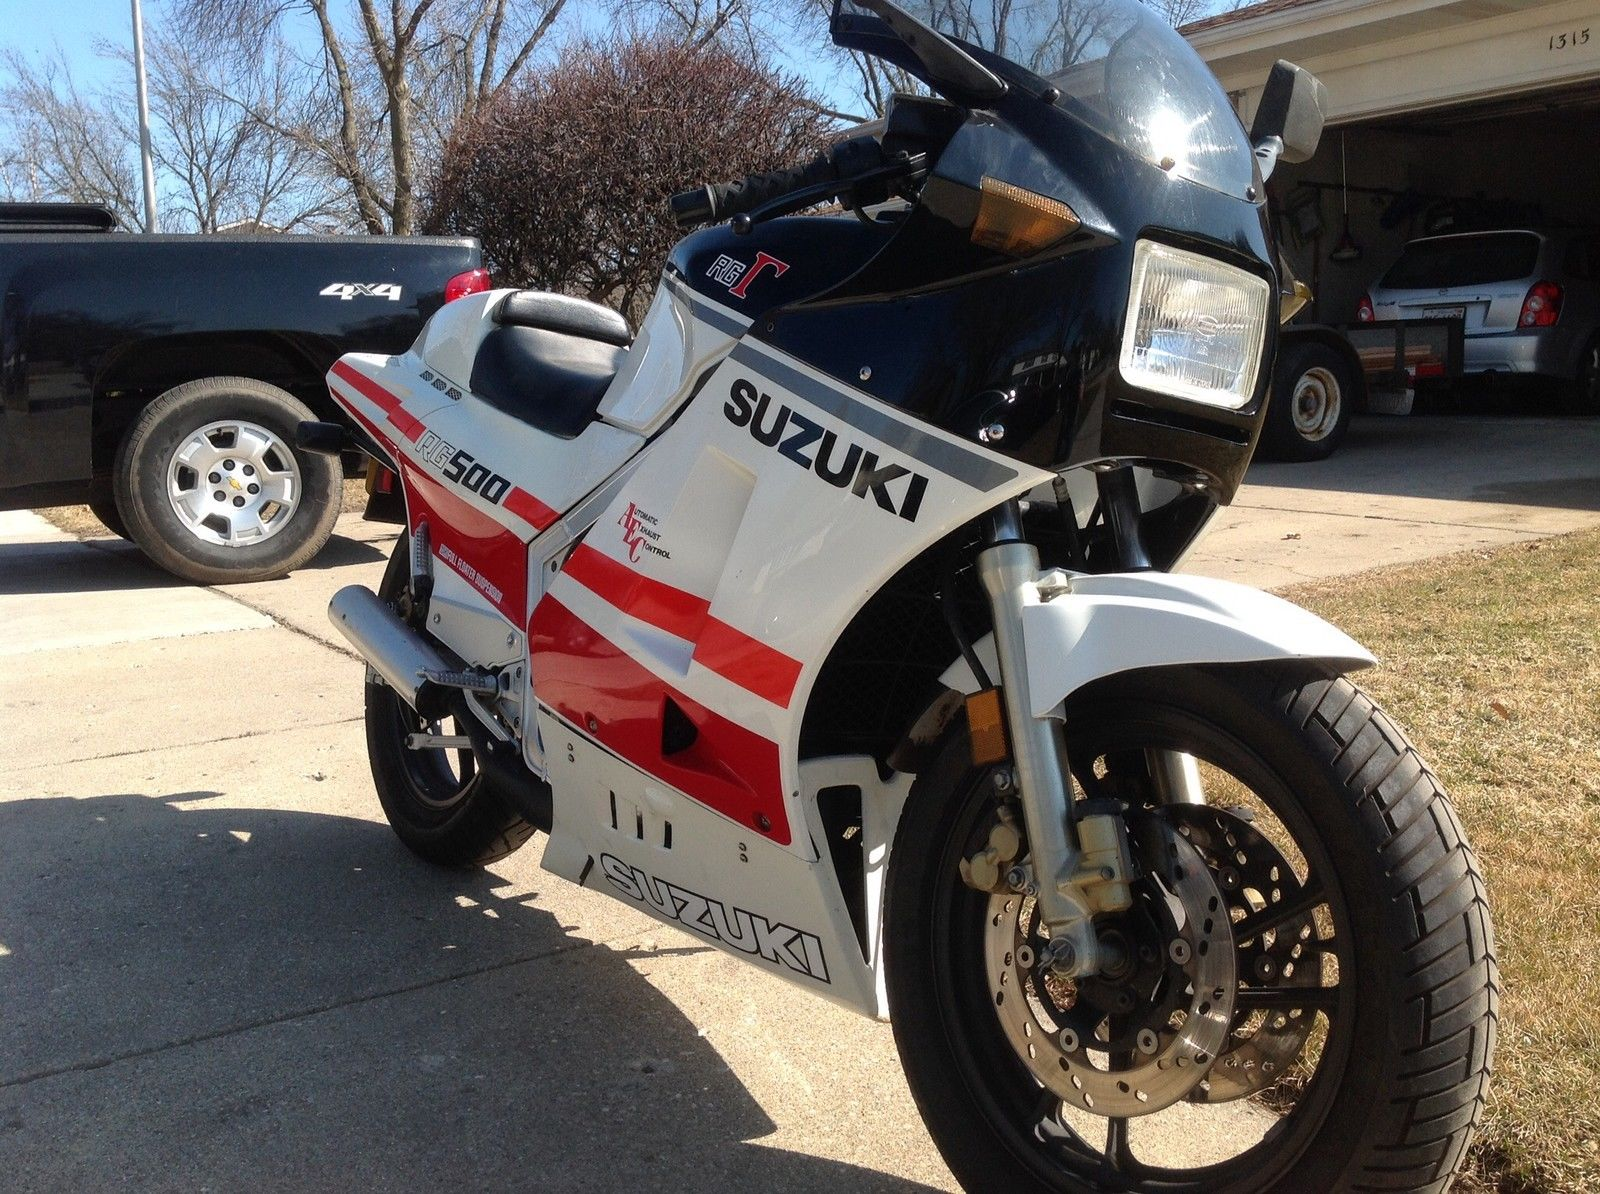 Suzuki Archives Page 22 Of 74 Rare Sportbikes For Sale Moded Bikes Check It Out Here And Let Us Know If You Would Prefer To Park This Rg Or The More Heavily Modified Rzv In Your Garage Man Caveor Both Good Luck